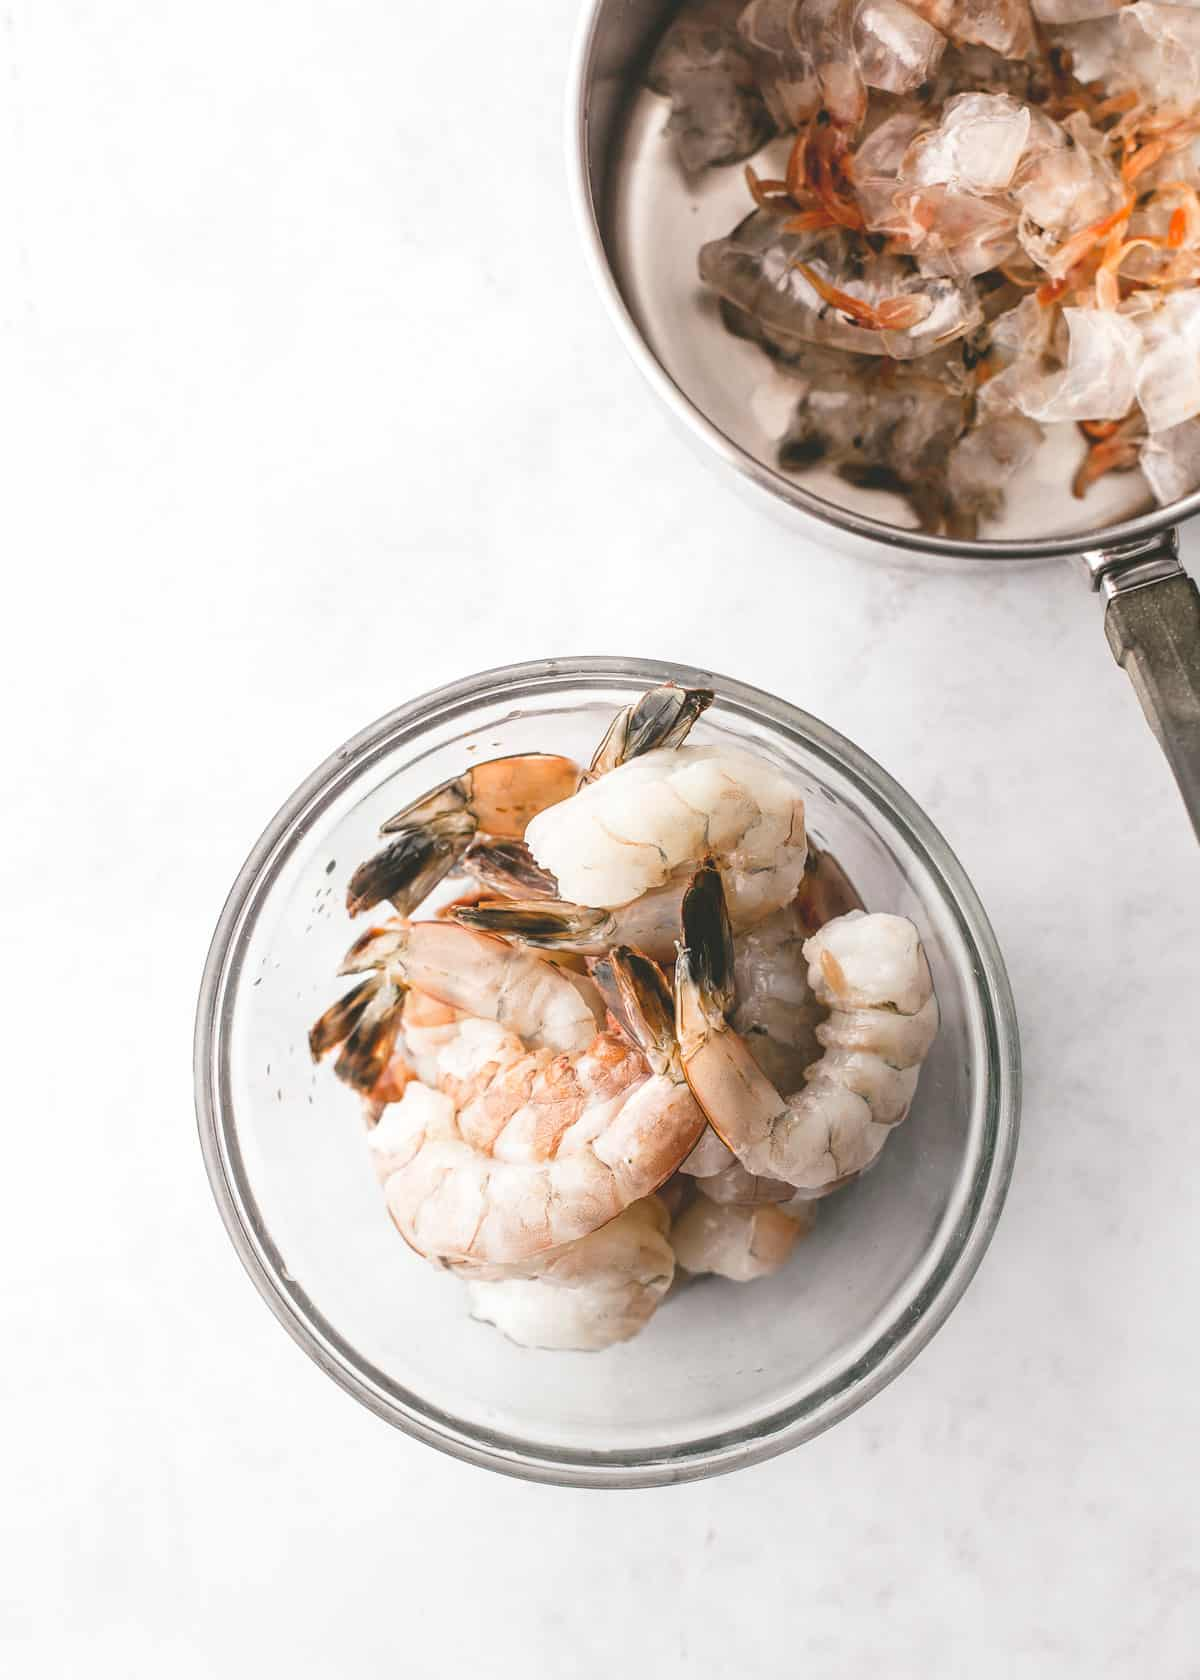 uncooked shrimp in a clear bowl